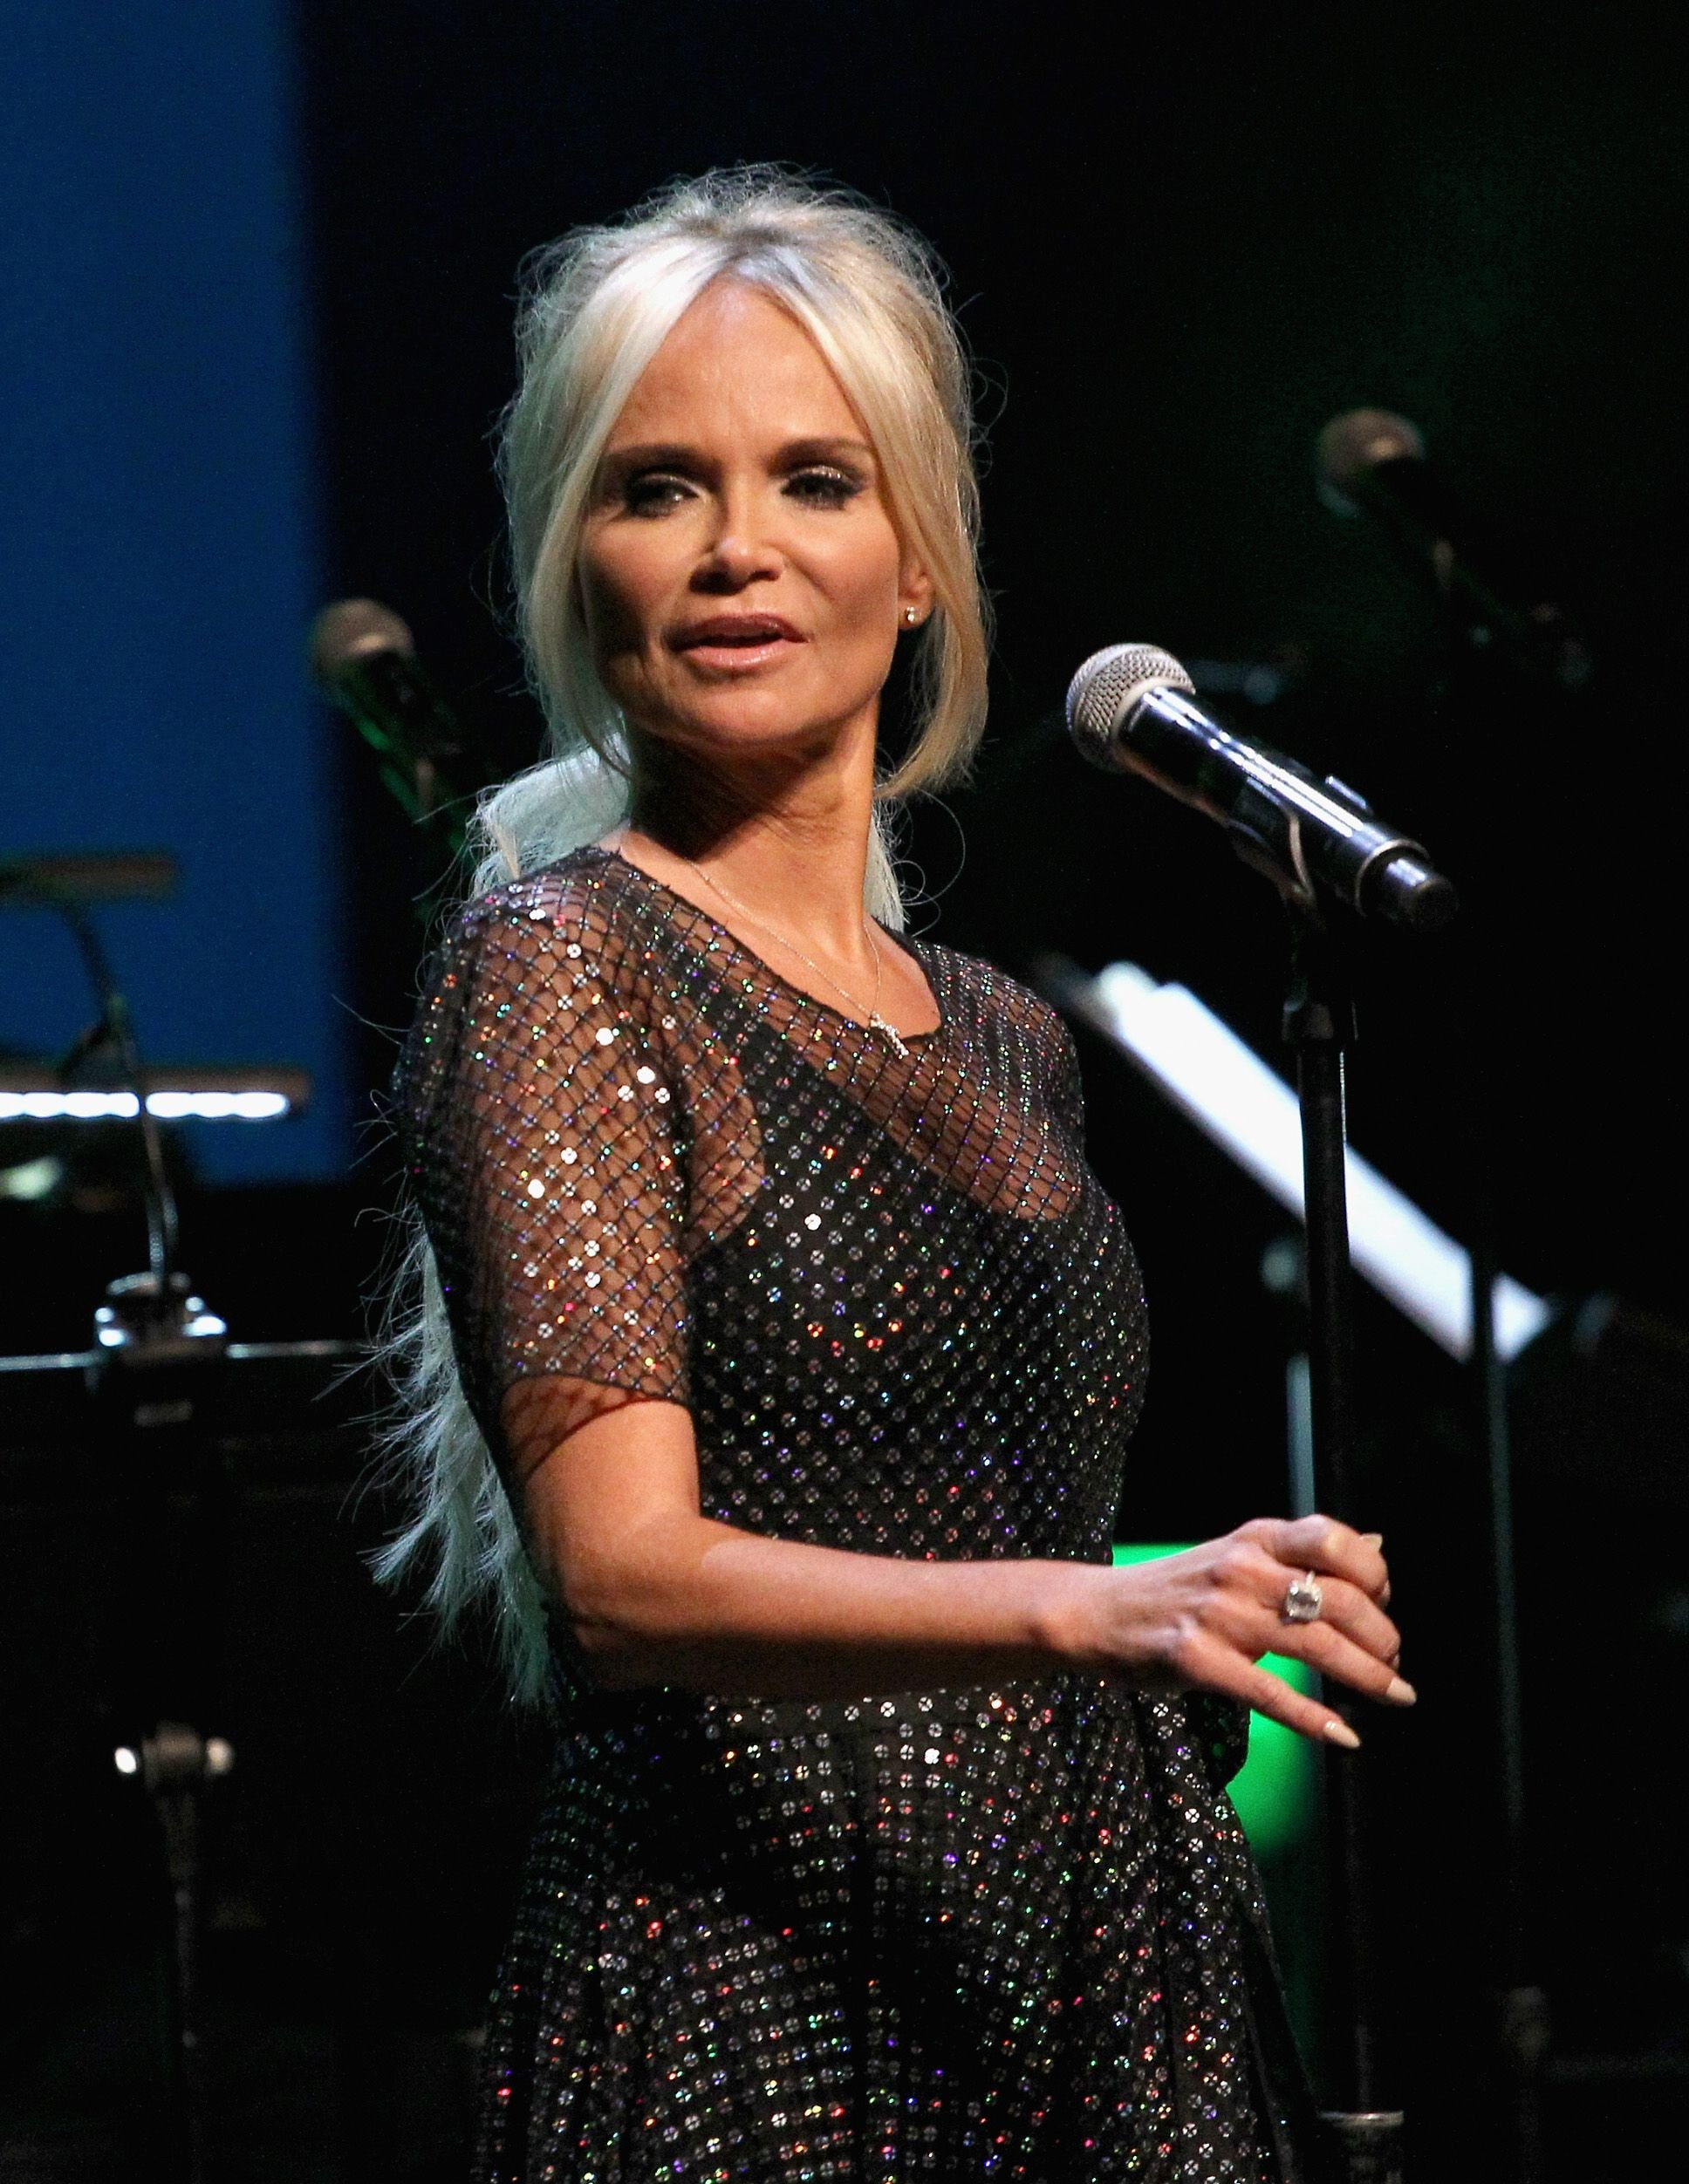 Kristin Chenoweth during the SAG-AFTRA Foundation's 3rd Annual Patron of the Artists Awards at the Wallis Annenberg Center for the Performing Arts on November 8, 2018 in Beverly Hills, California.   Source: Getty Images